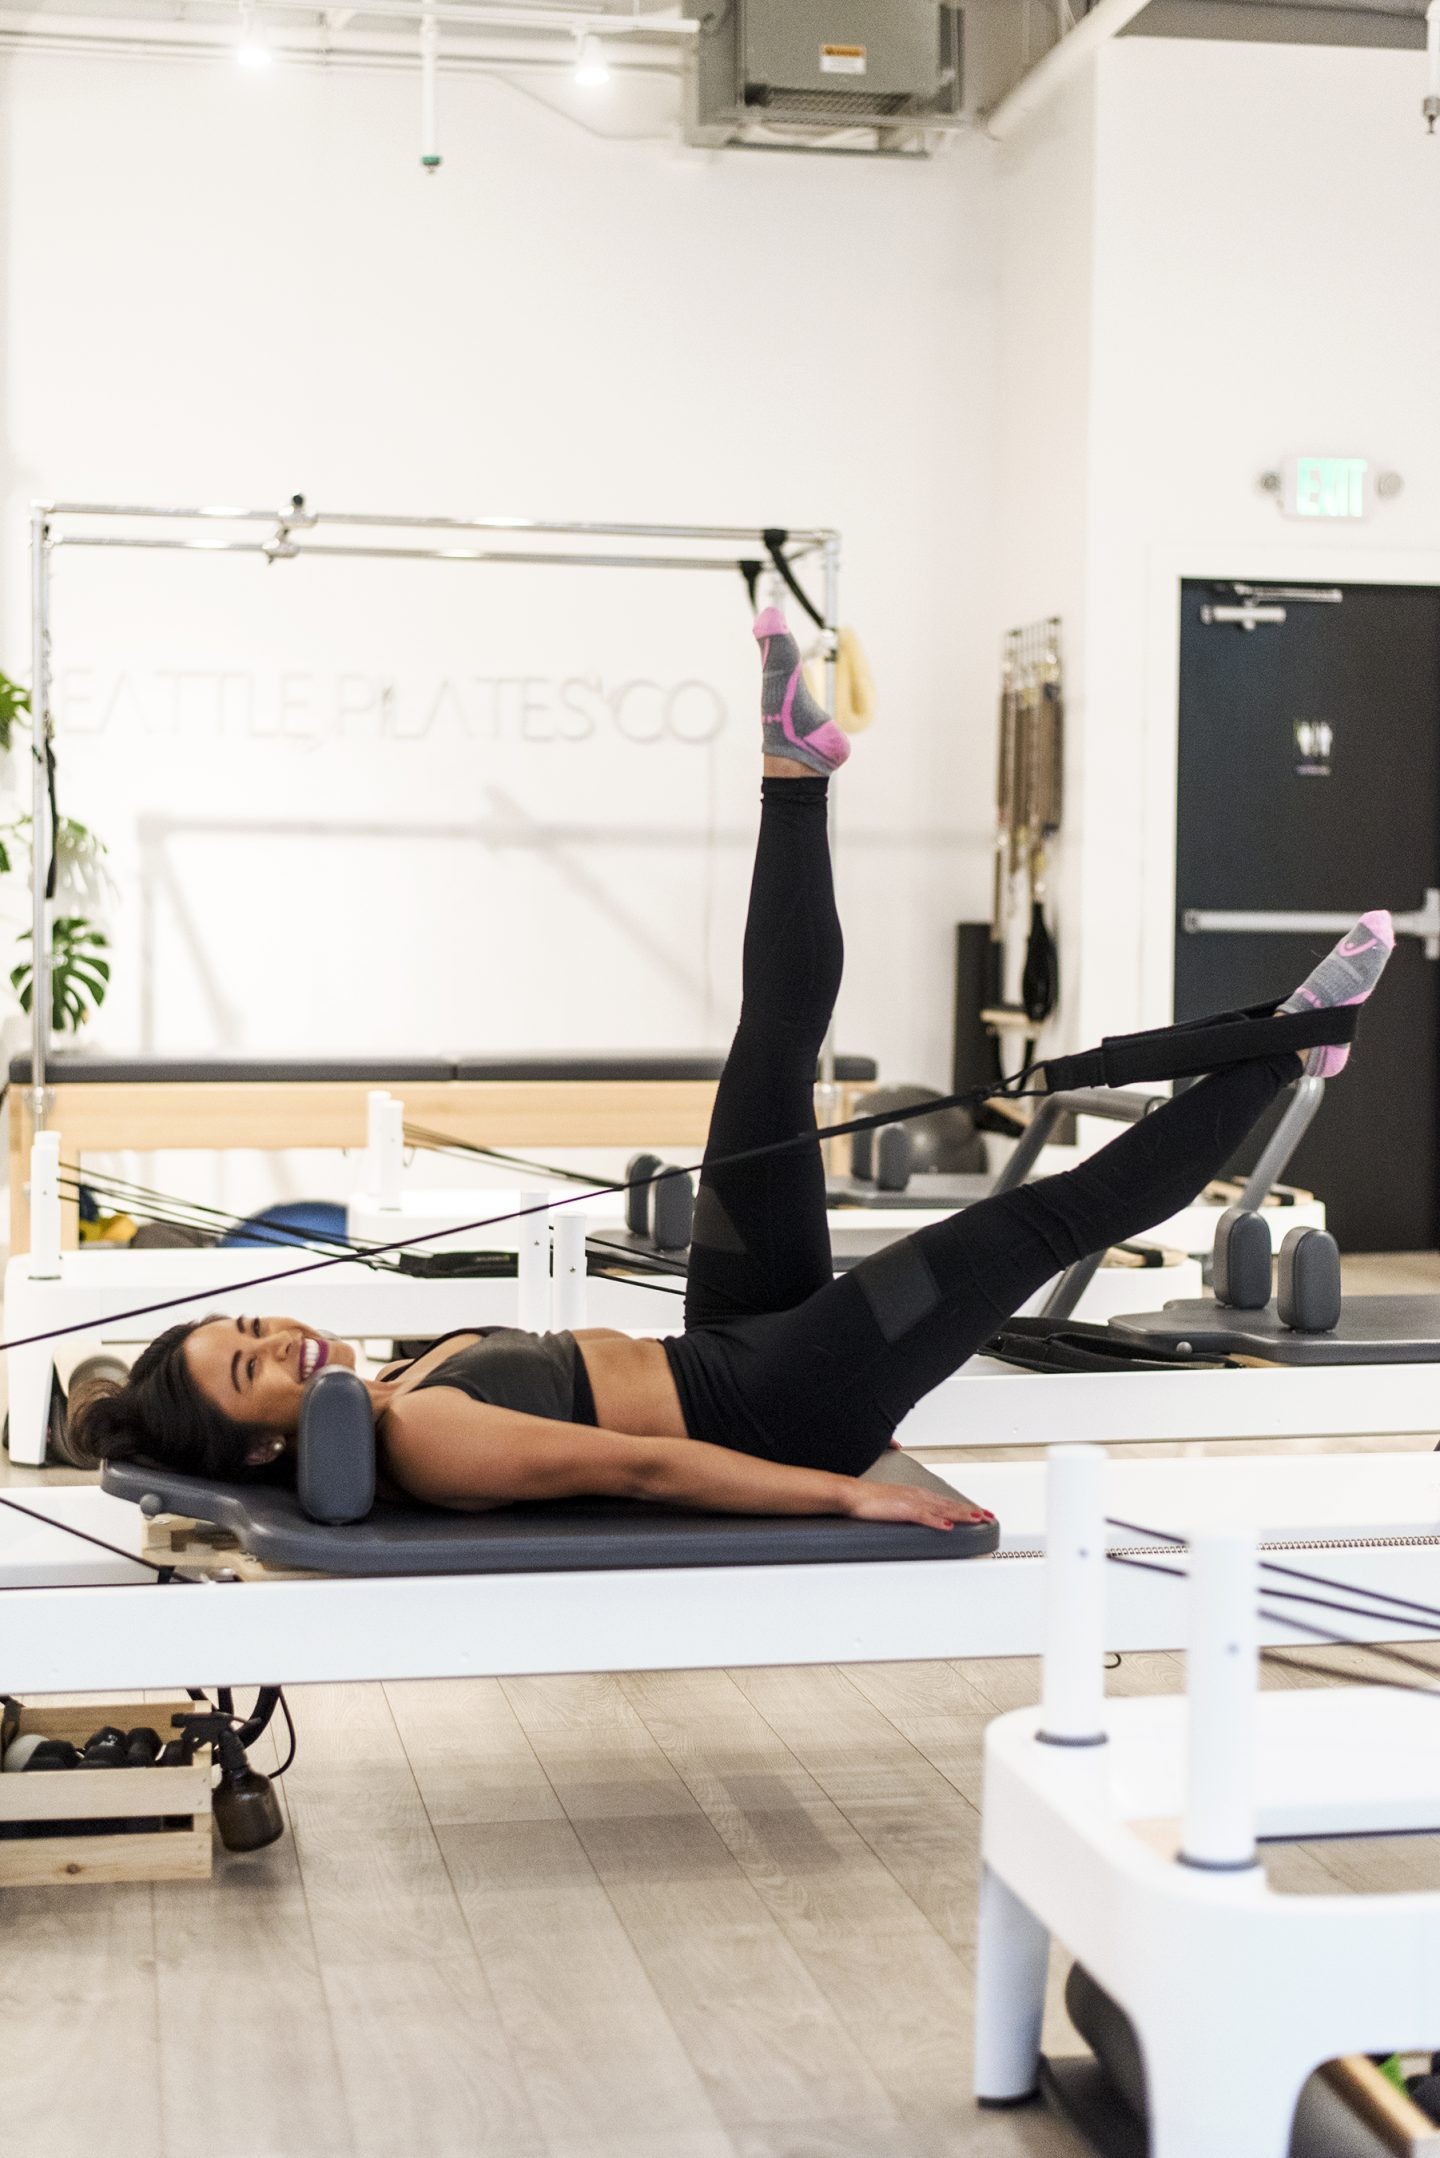 Reformer Pilates - Scissor Kicks - Leg Pilates workouts